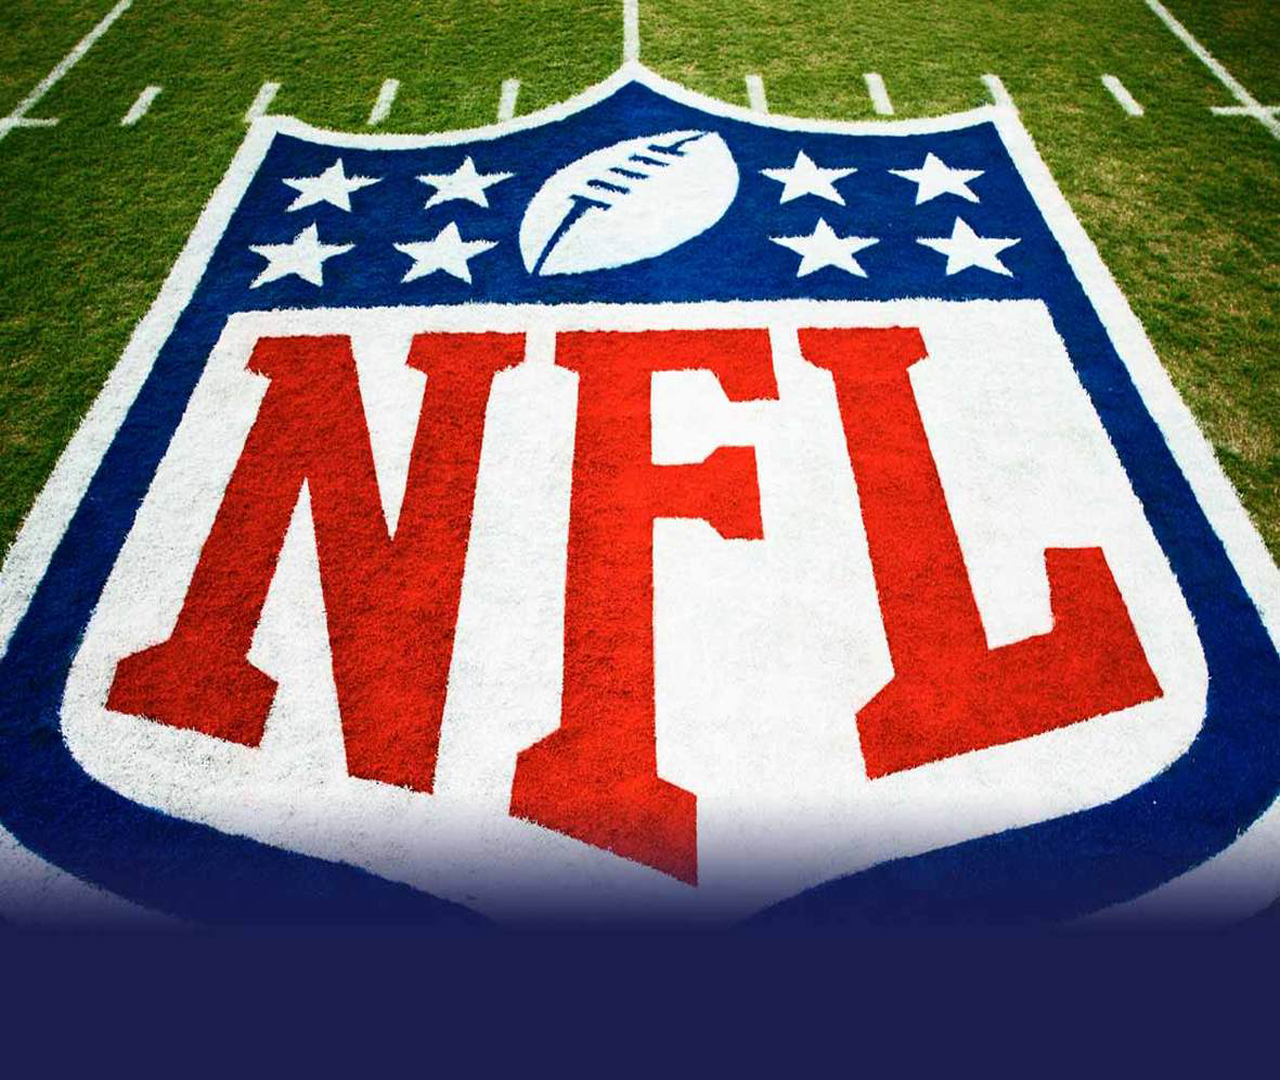 NFL 2012 - Free Download NFL Football HD Wallpapers for ...